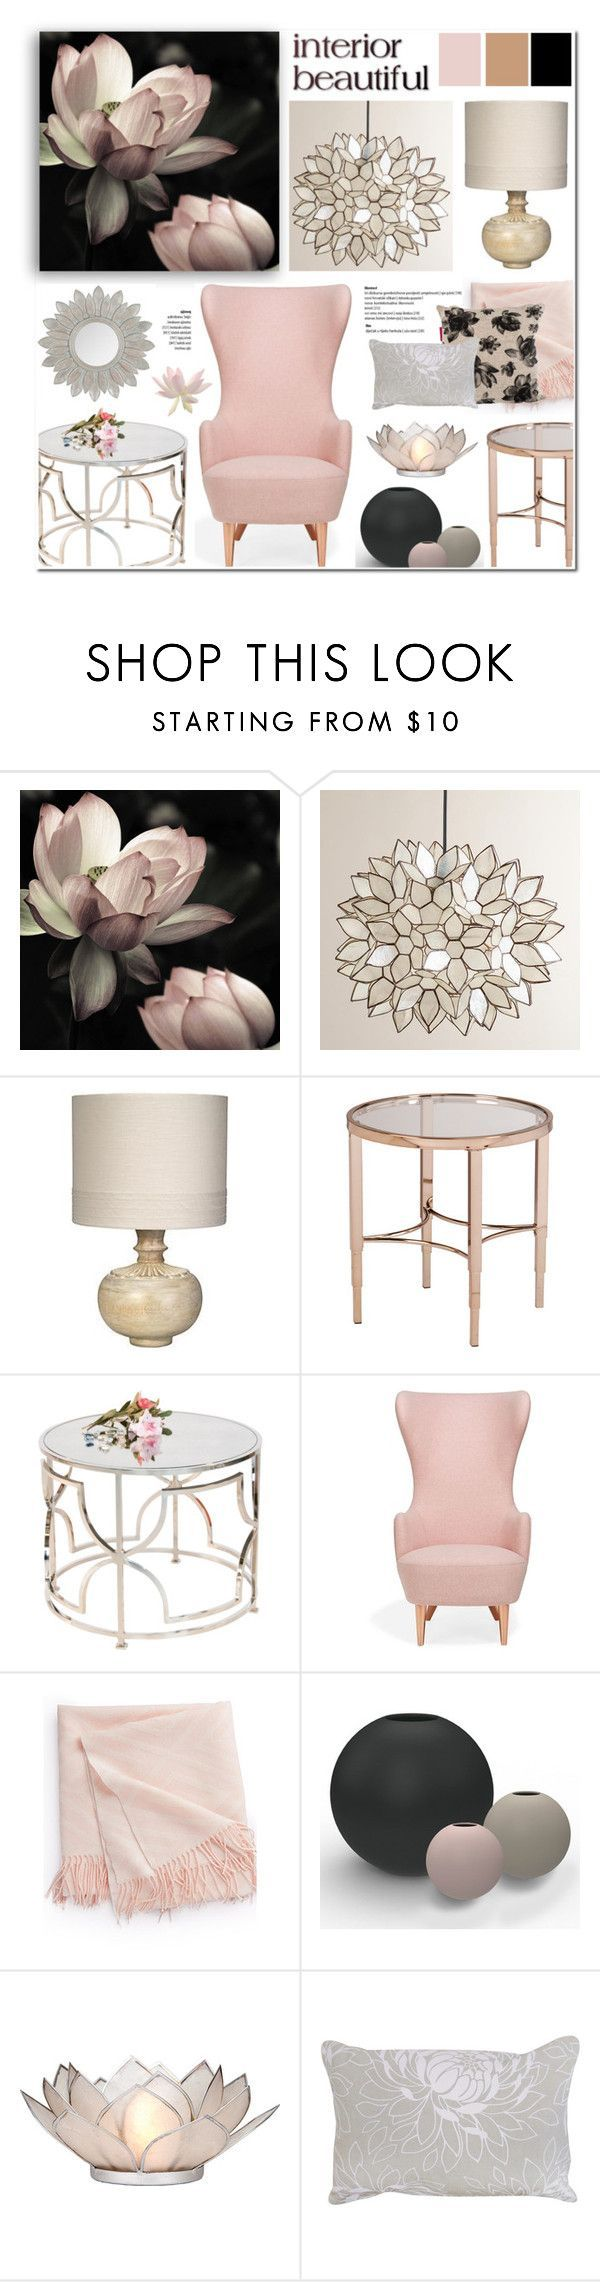 lotus inspired spa designinspired homeshome decor